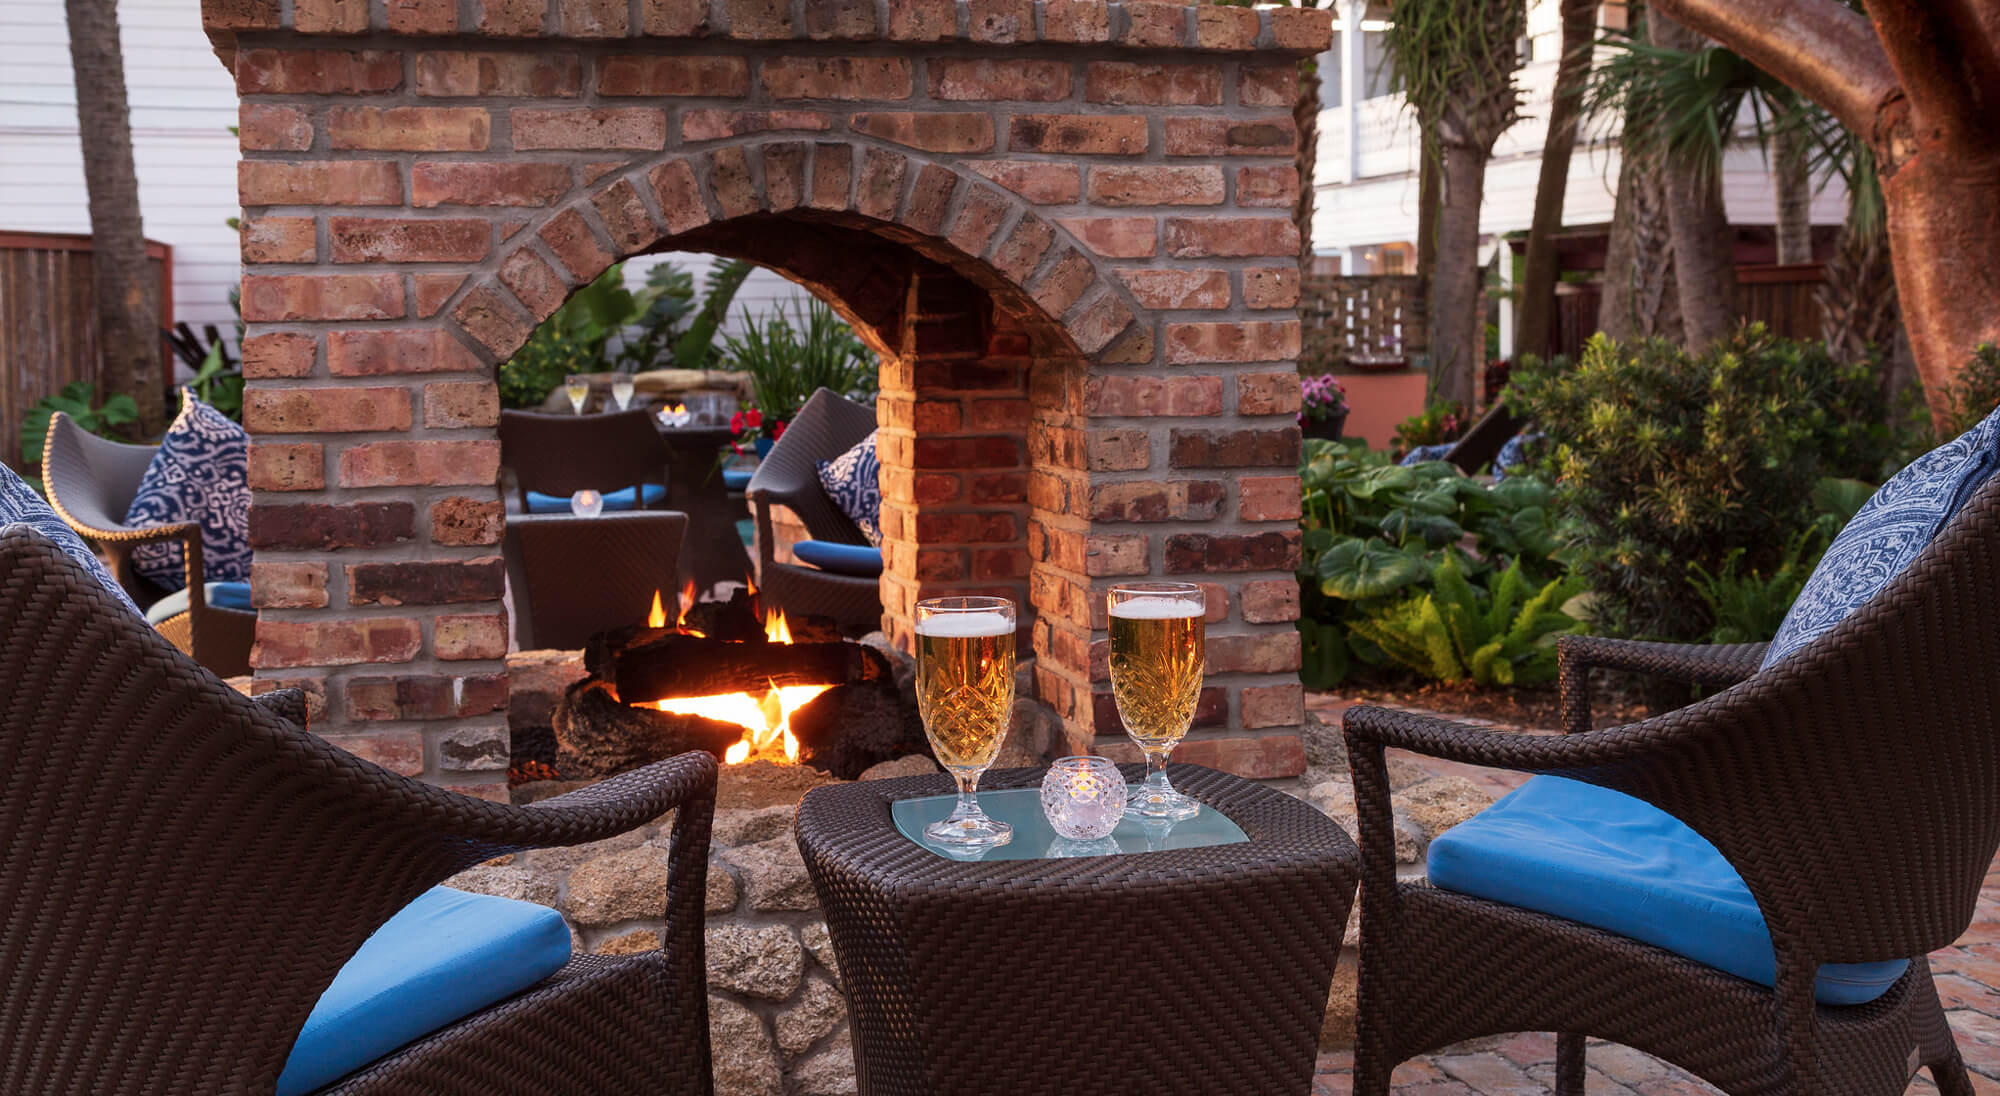 Two chairs with two beers in front of an outdoor brick fireplace